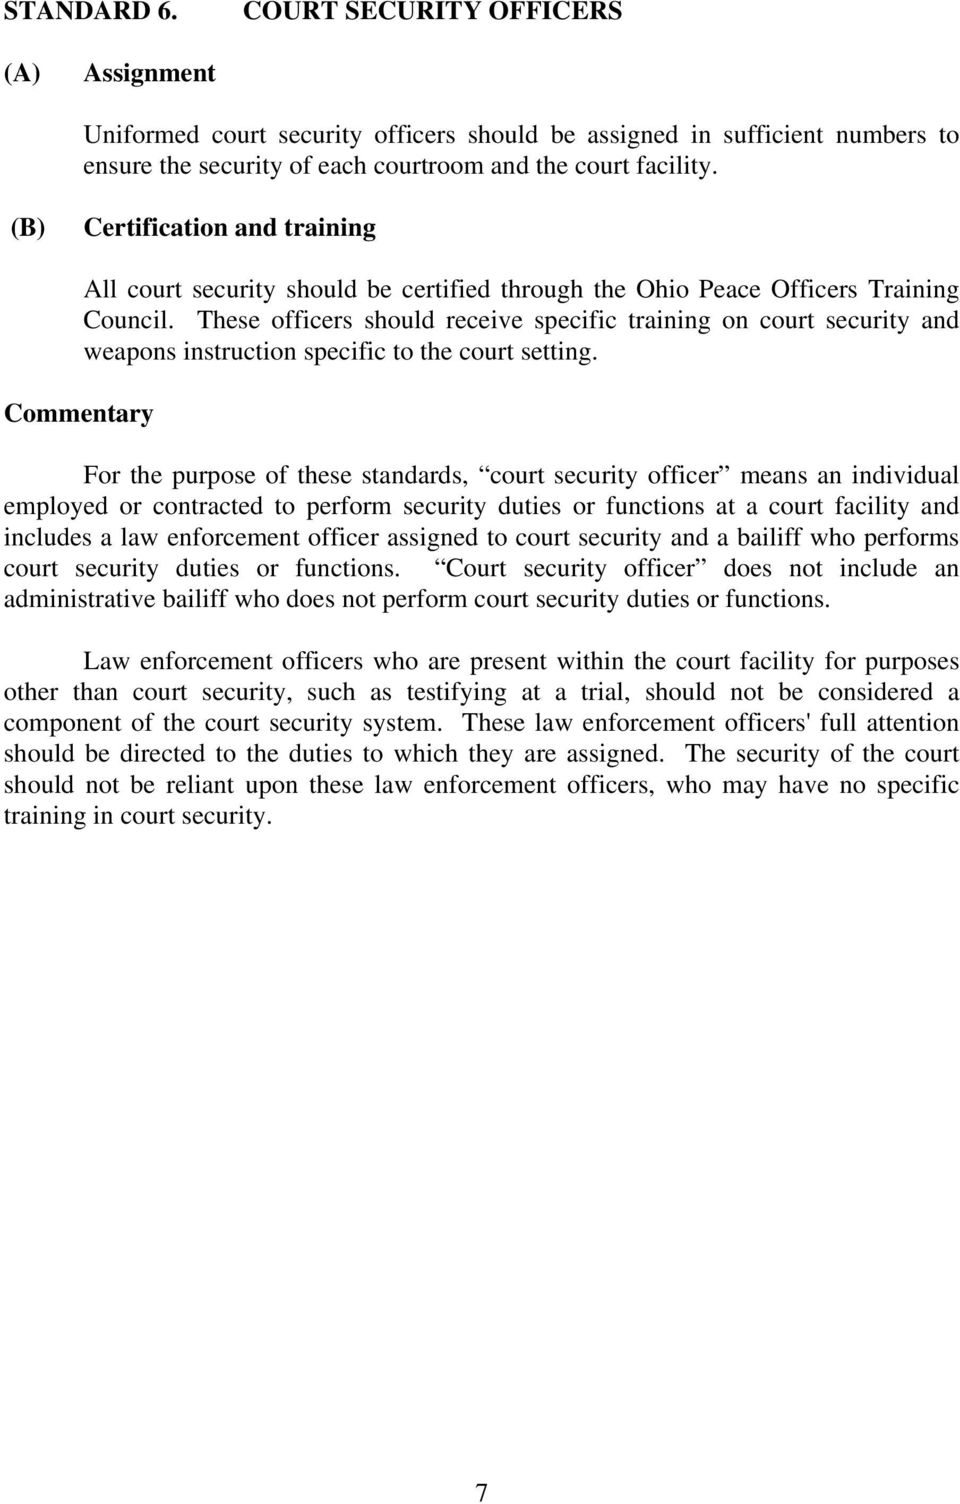 These officers should receive specific training on court security and weapons instruction specific to the court setting.